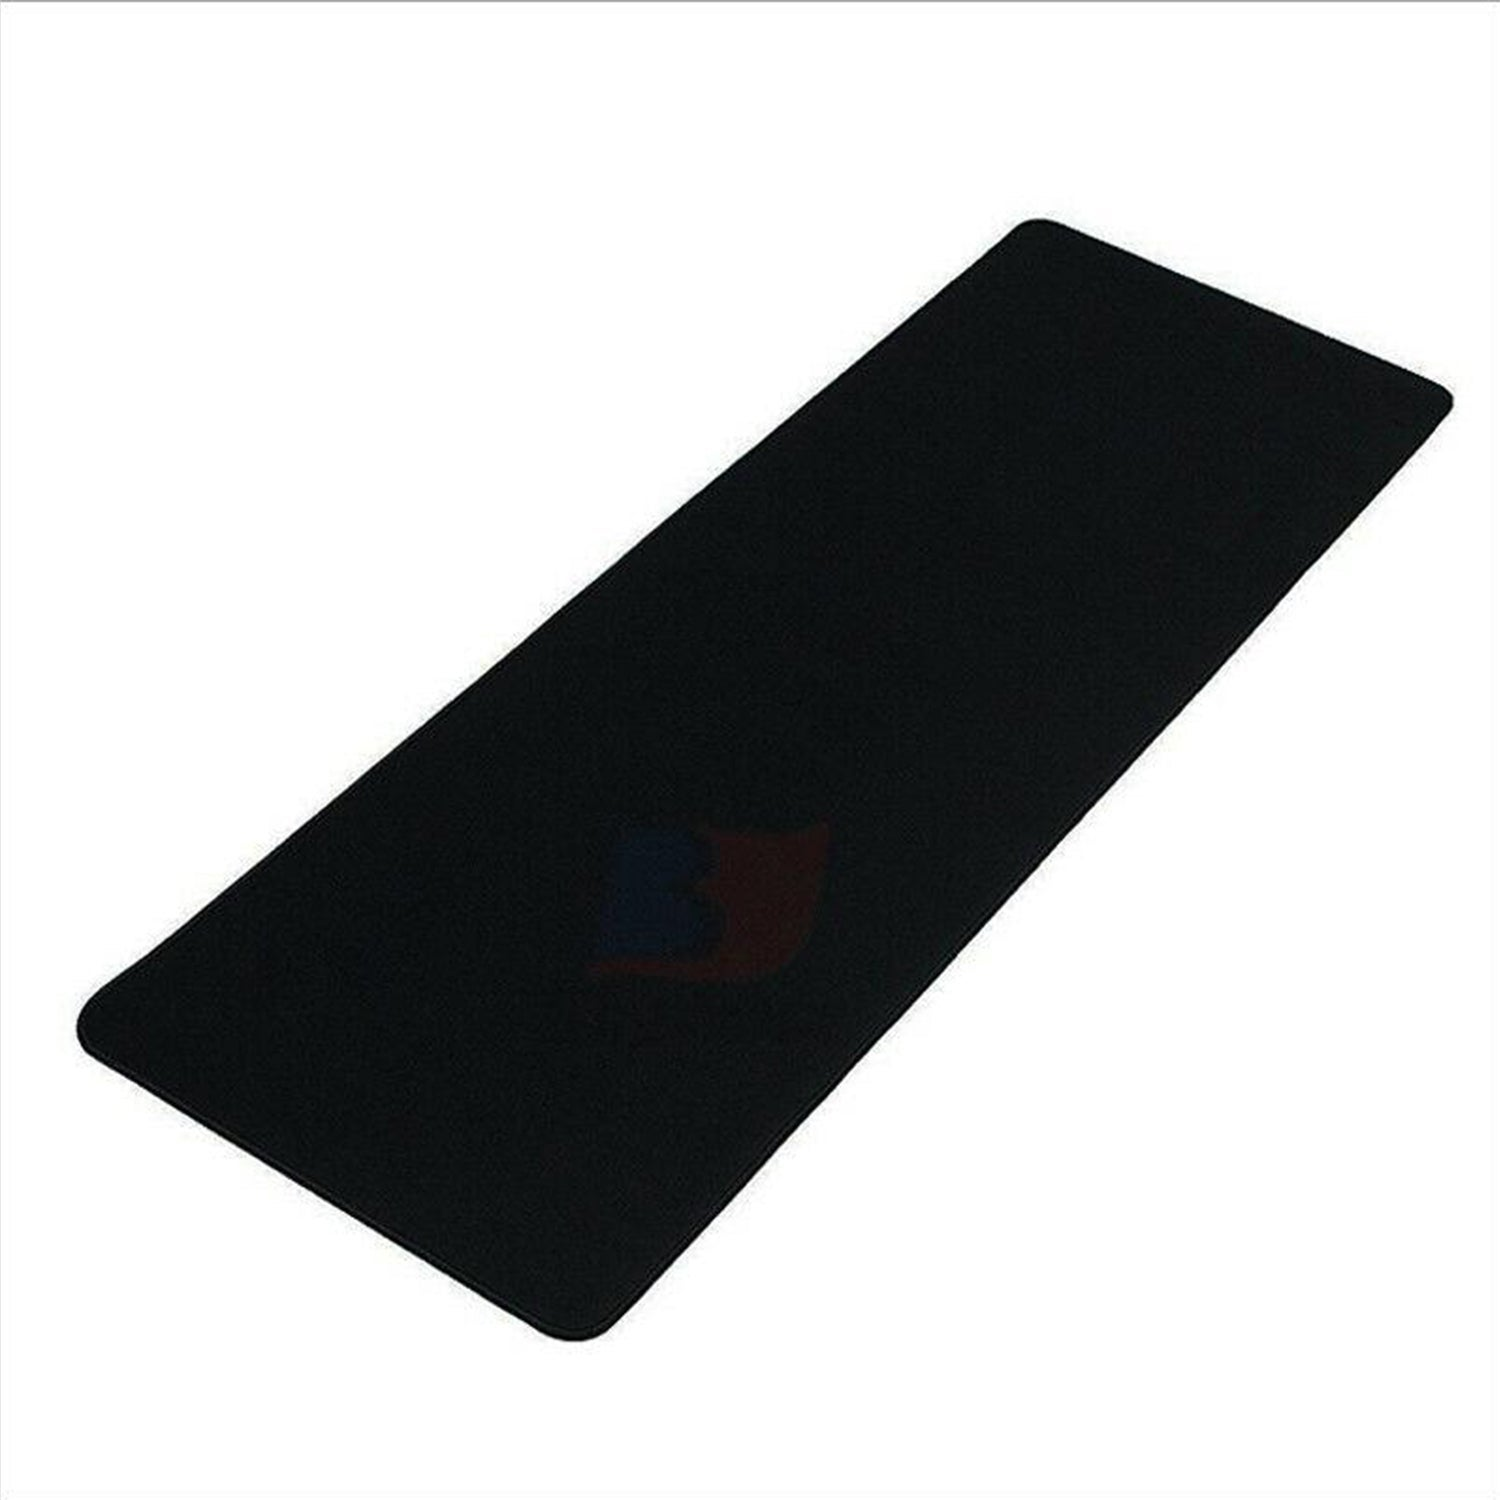 800X300X3MM Gaming Mouse Pad Desk Mat Extended Anti-slip Rubber Speed Mousepad